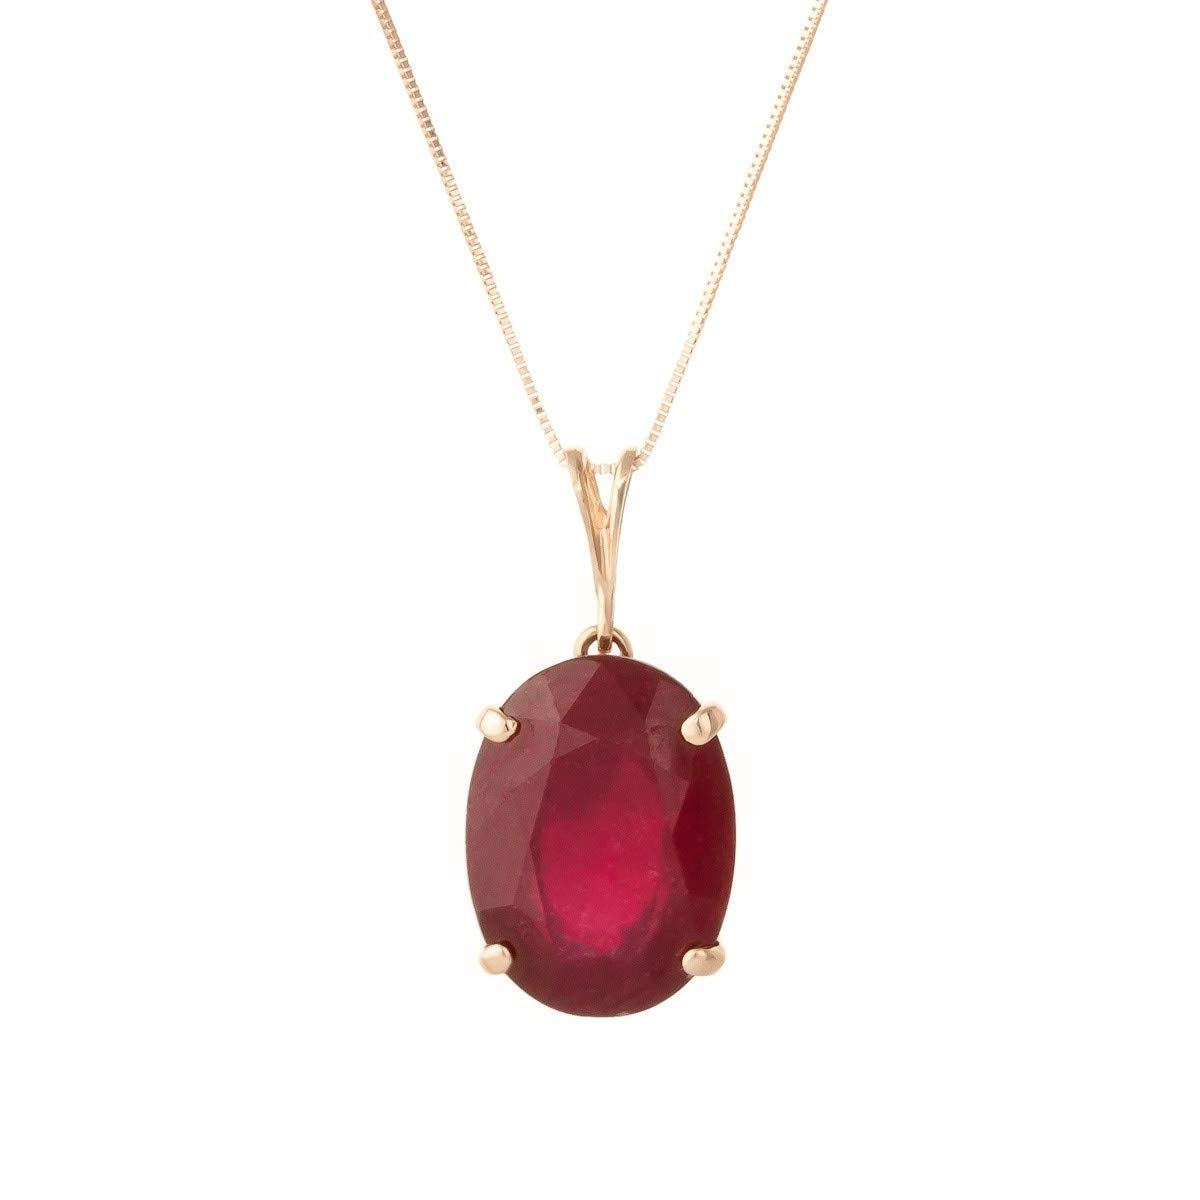 7.7 Carat 14k 20'' Solid Rose Gold Necklace with Natural Oval-Shaped Ruby Pendant